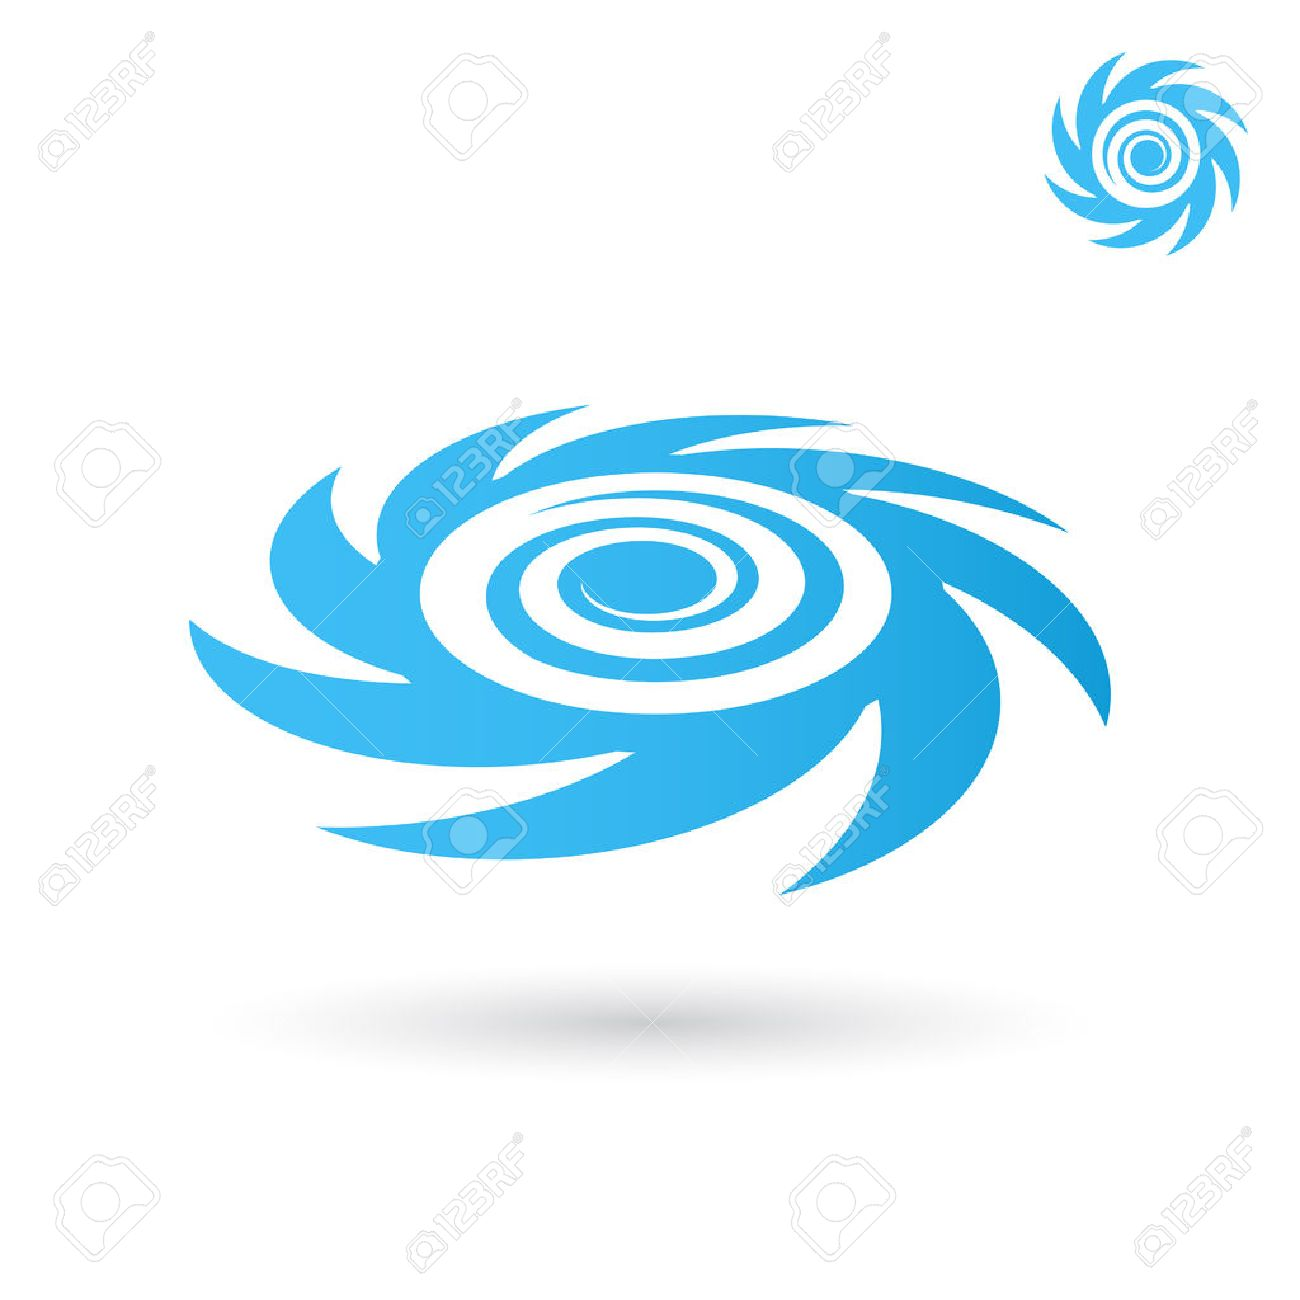 Sea tornado logo, storm icon, 2d and 3d on white background - 52558170